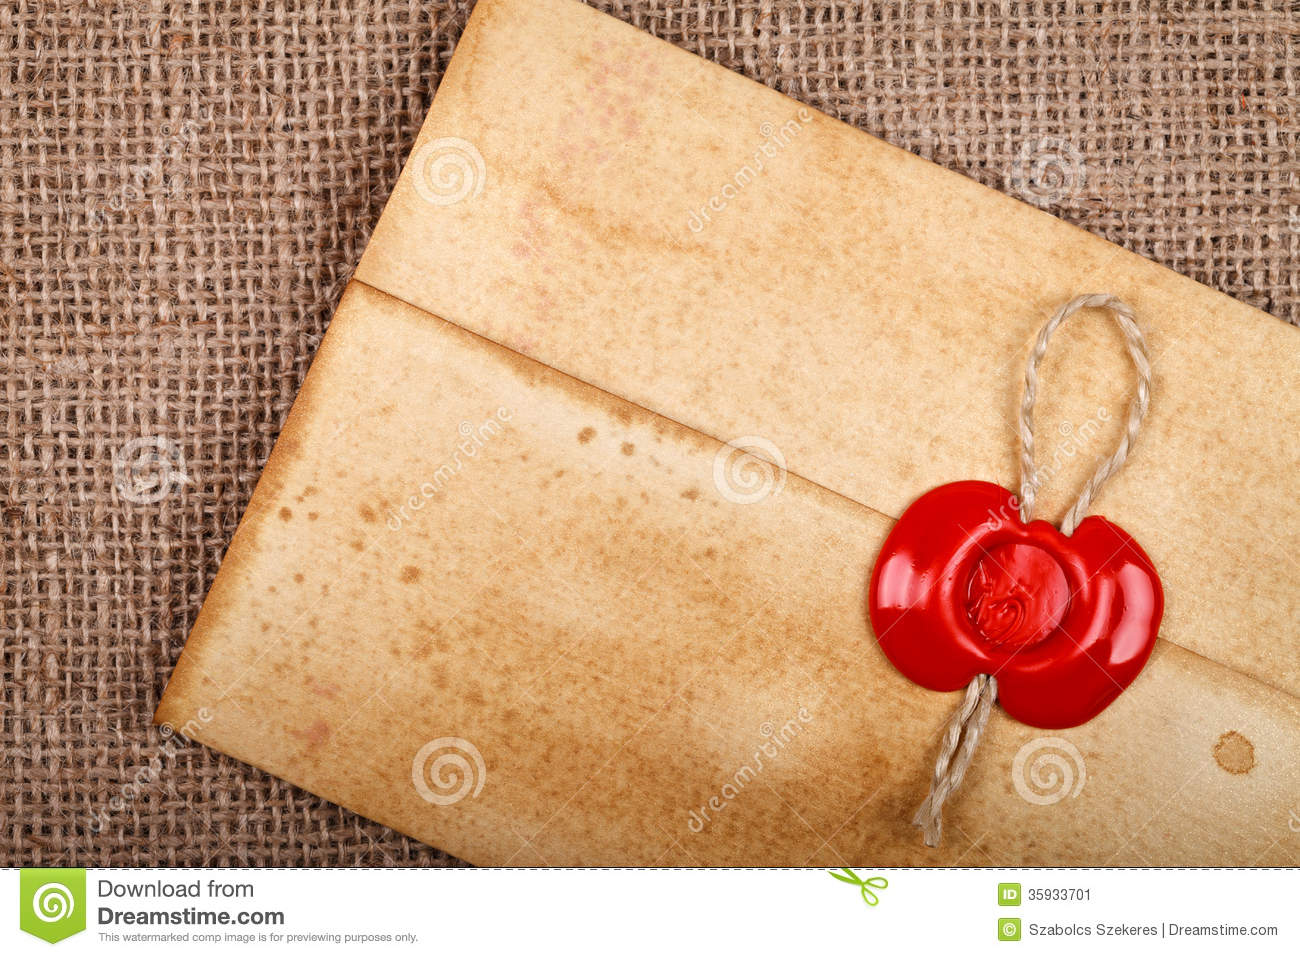 Spa Banner Rollup additionally Konigwheels additionally University Building St Etienne France likewise Some Cultures Funny Thank You Card 349ZZS6604 as well Merry christmas stickers. on gold envelope